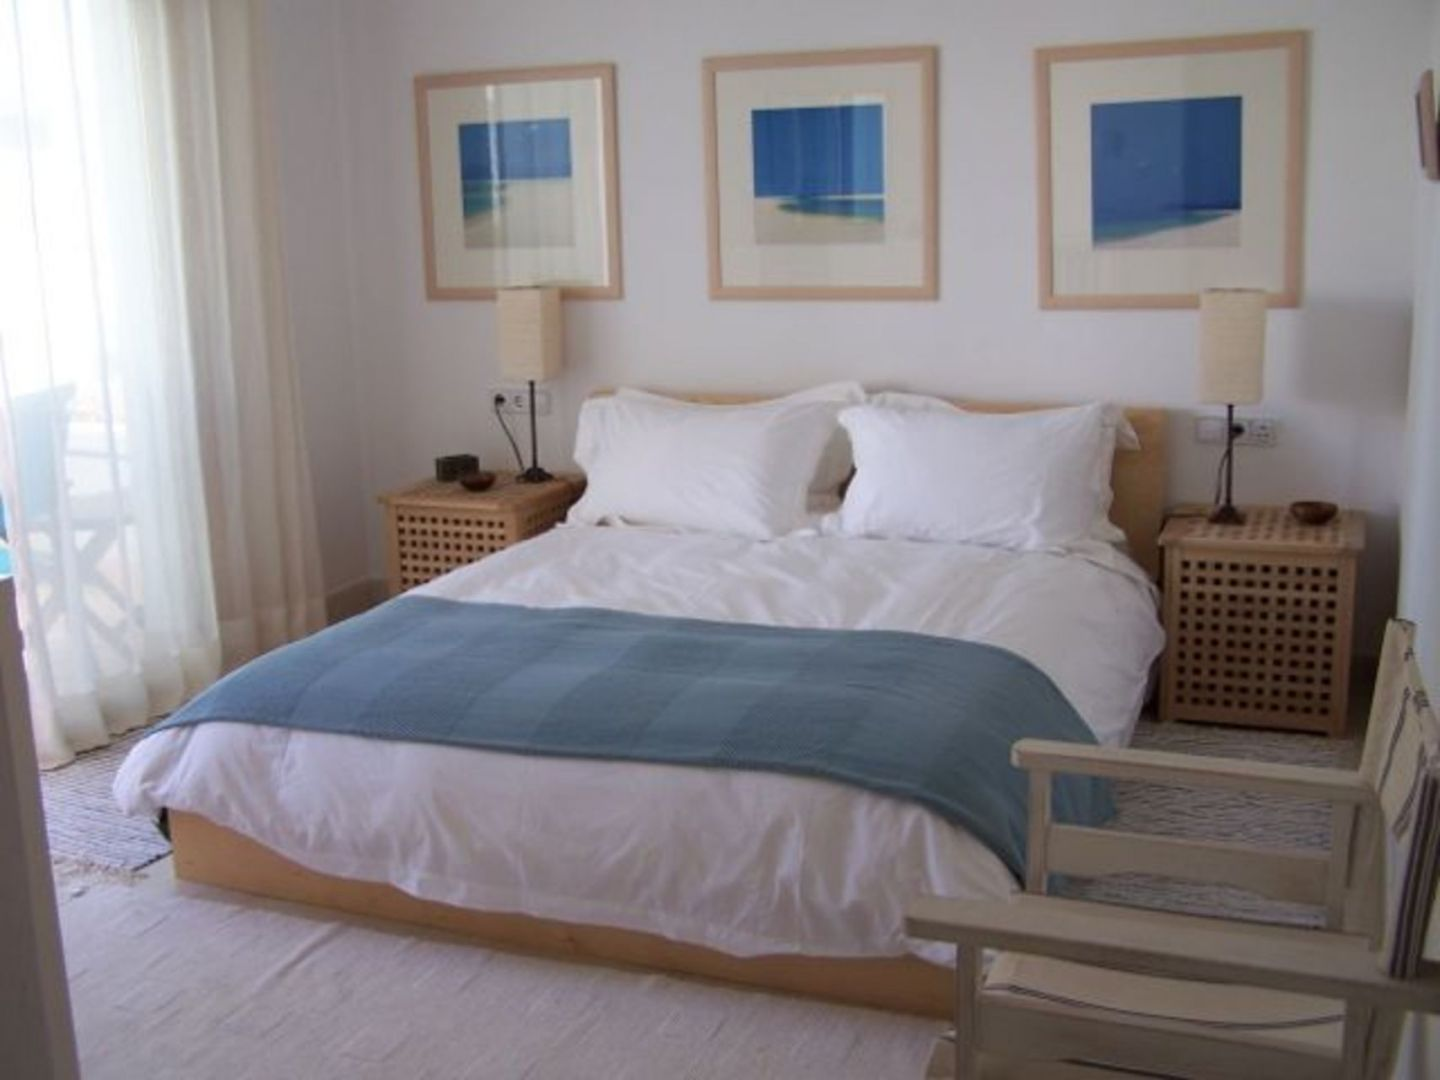 4 Bed Townhouse for sale in PUERTO POLLENSA 6